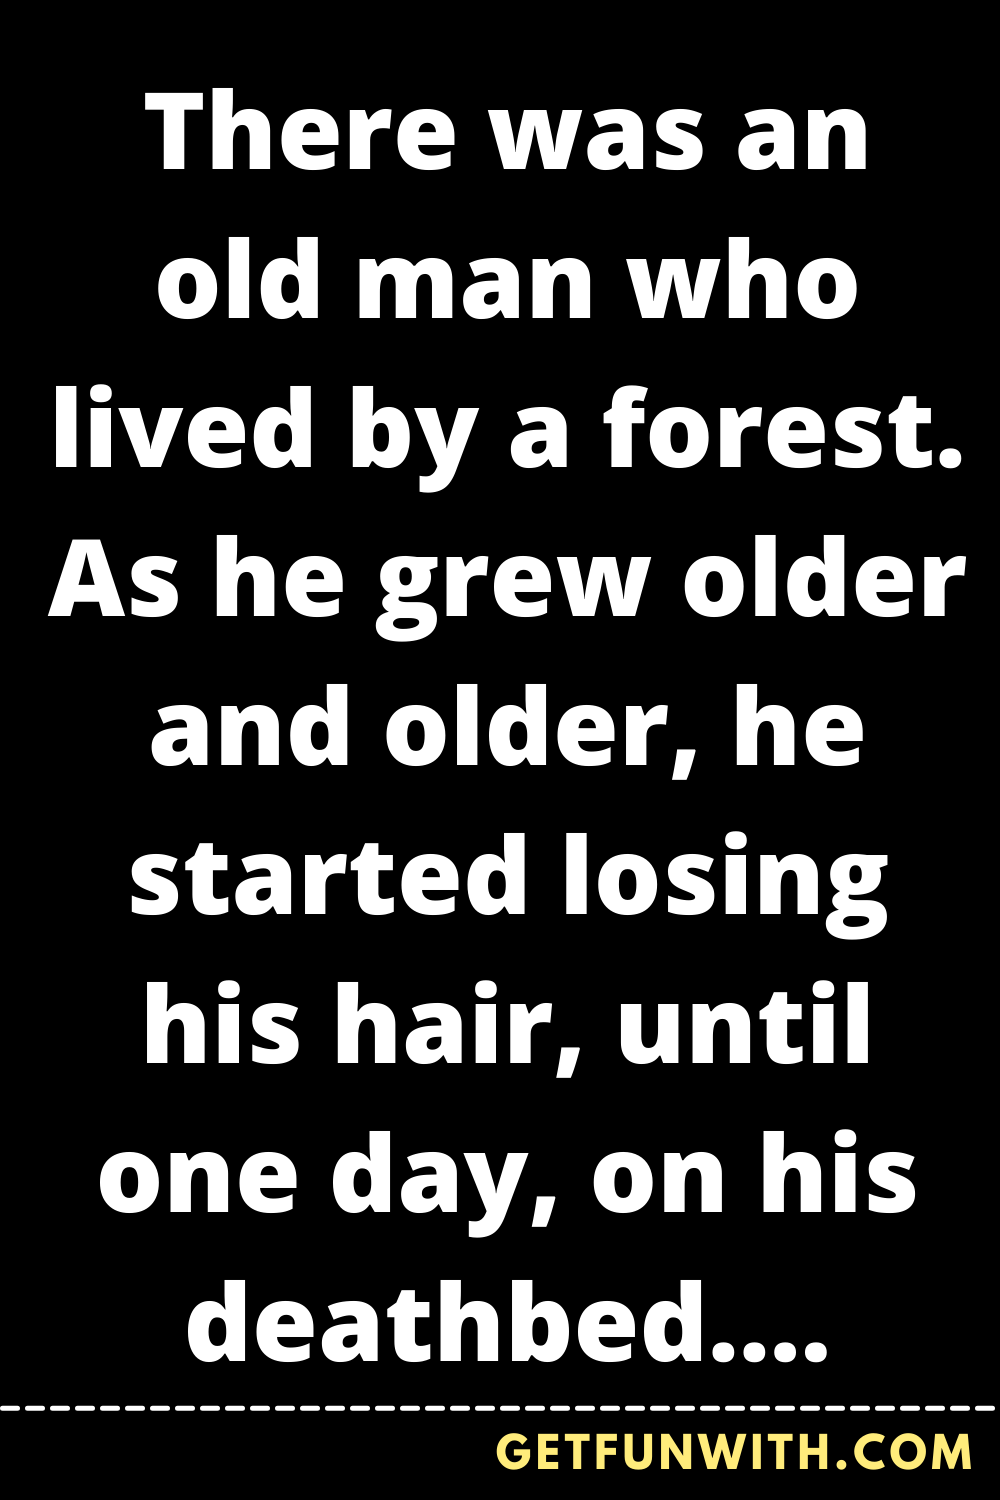 There was an old man who lived by a forest. As he grew older and older, he started losing his hair, until one day, on his deathbed, he was completely bald. That day, he called his children to a meeting...